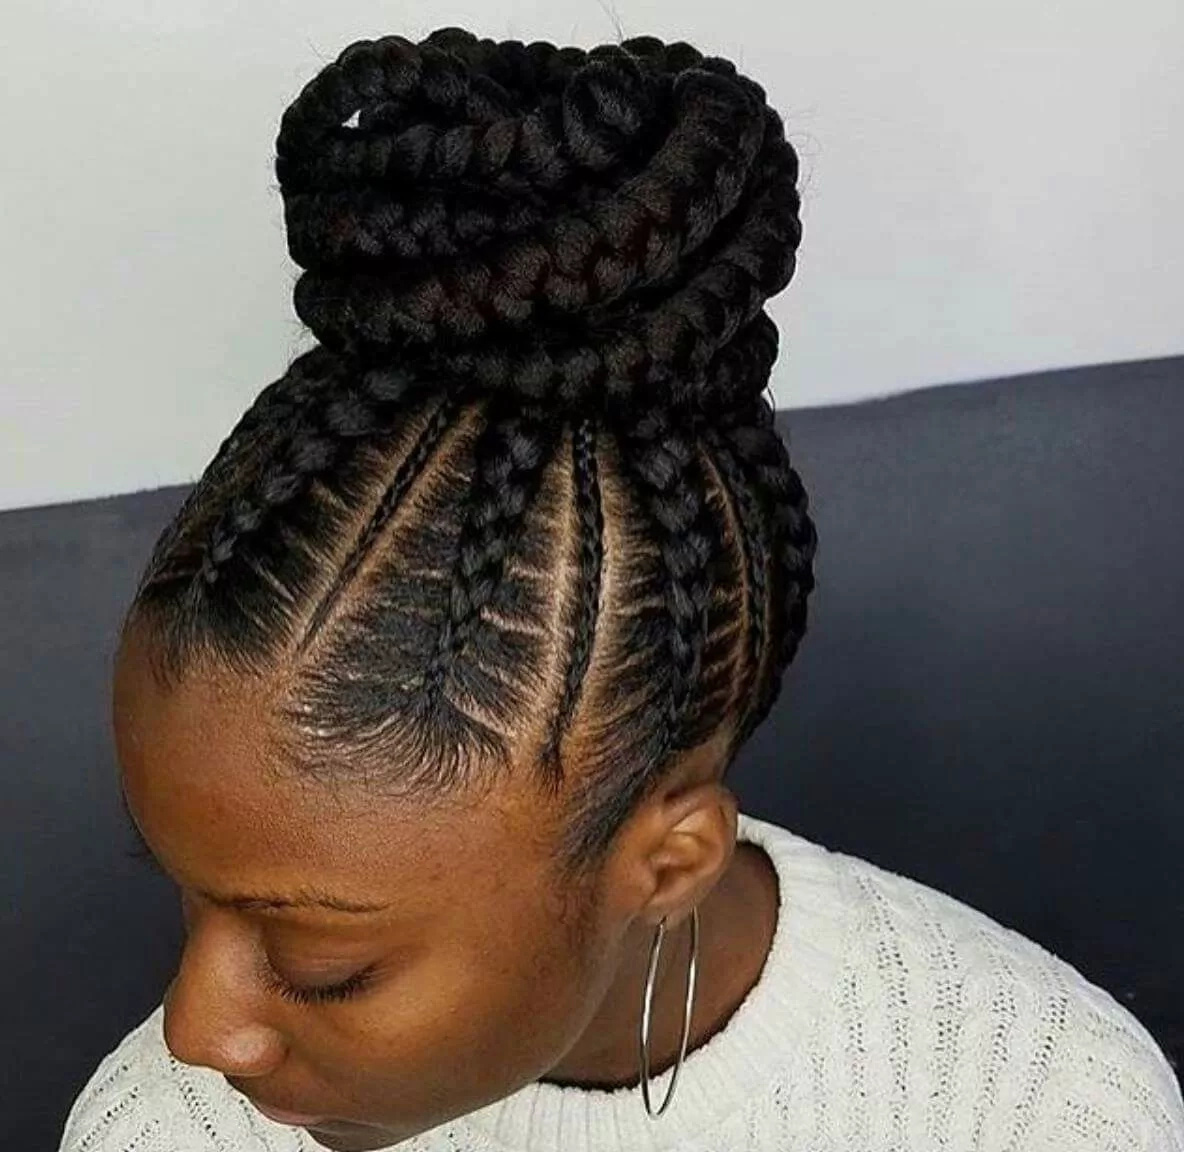 Top 10 African braiding hairstyles for ladies (PHOTOS) - INFORMATION ...